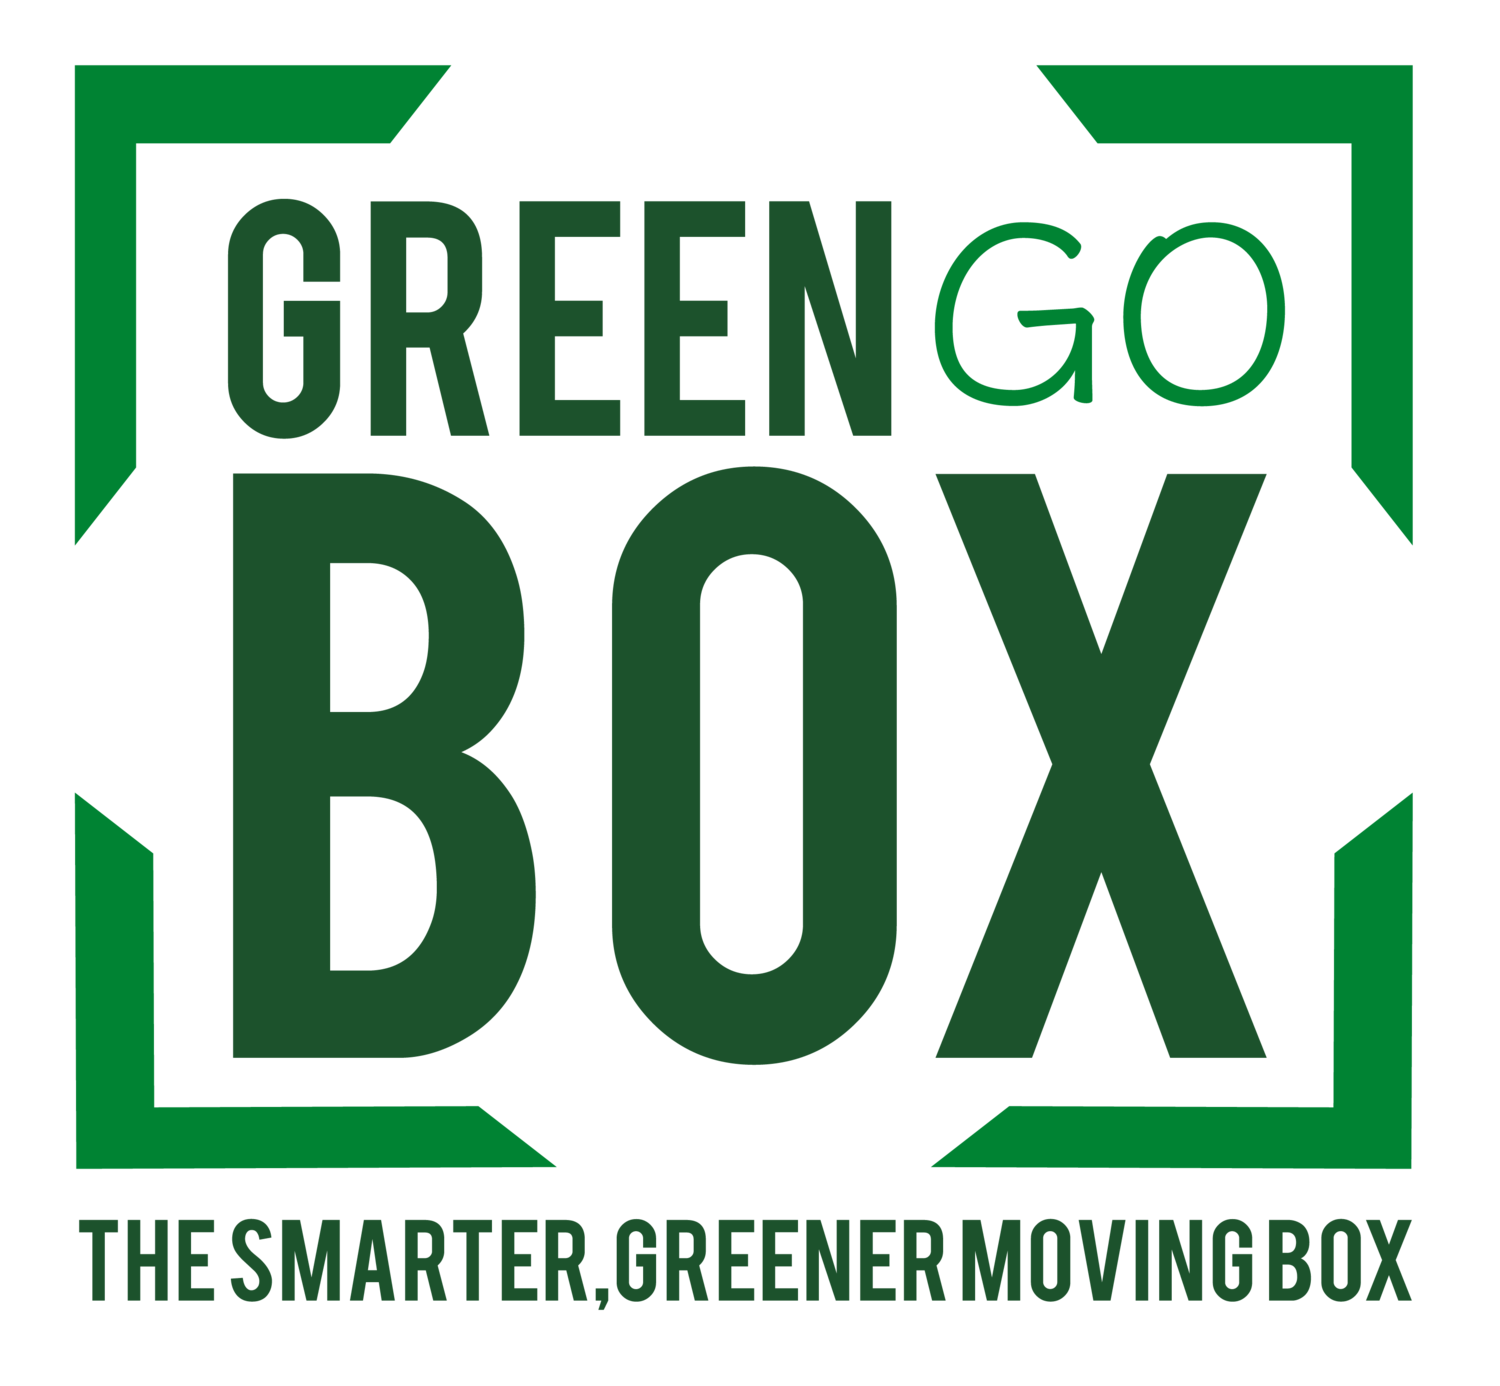 Green Go Box